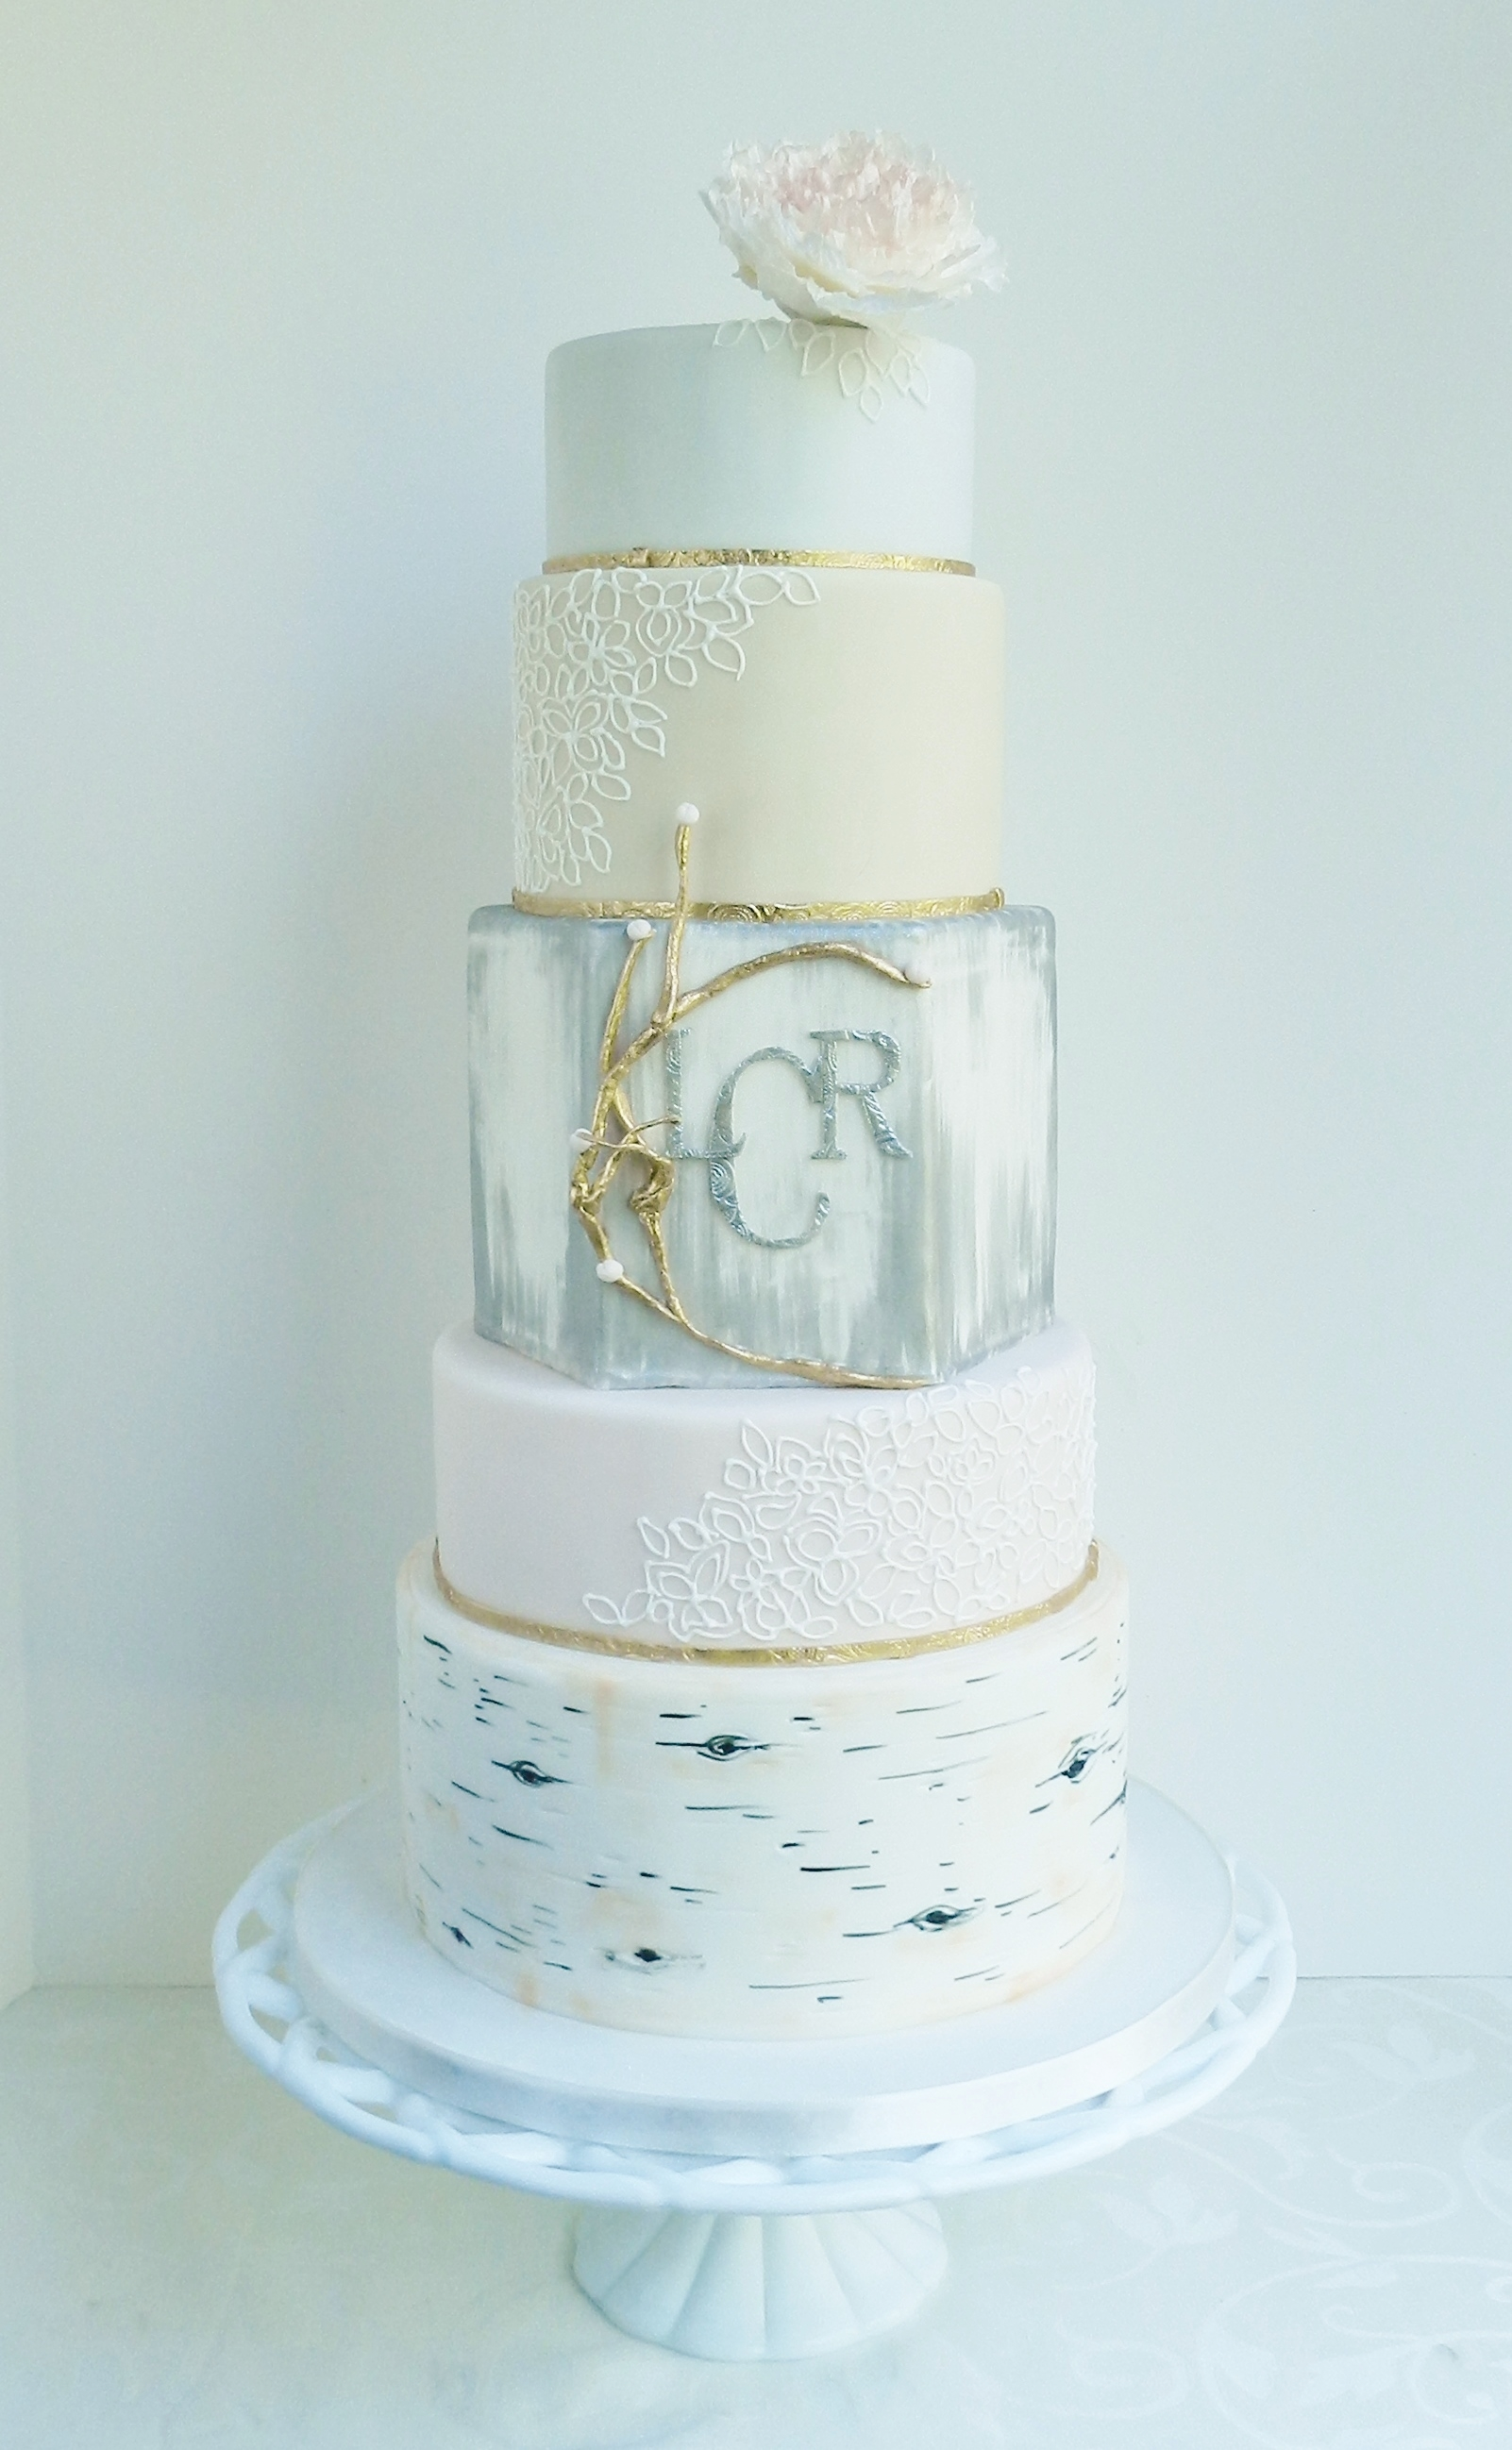 Grace Vintage Rustic Love With Birch Piped Lace And Silver Brush on Cake Central